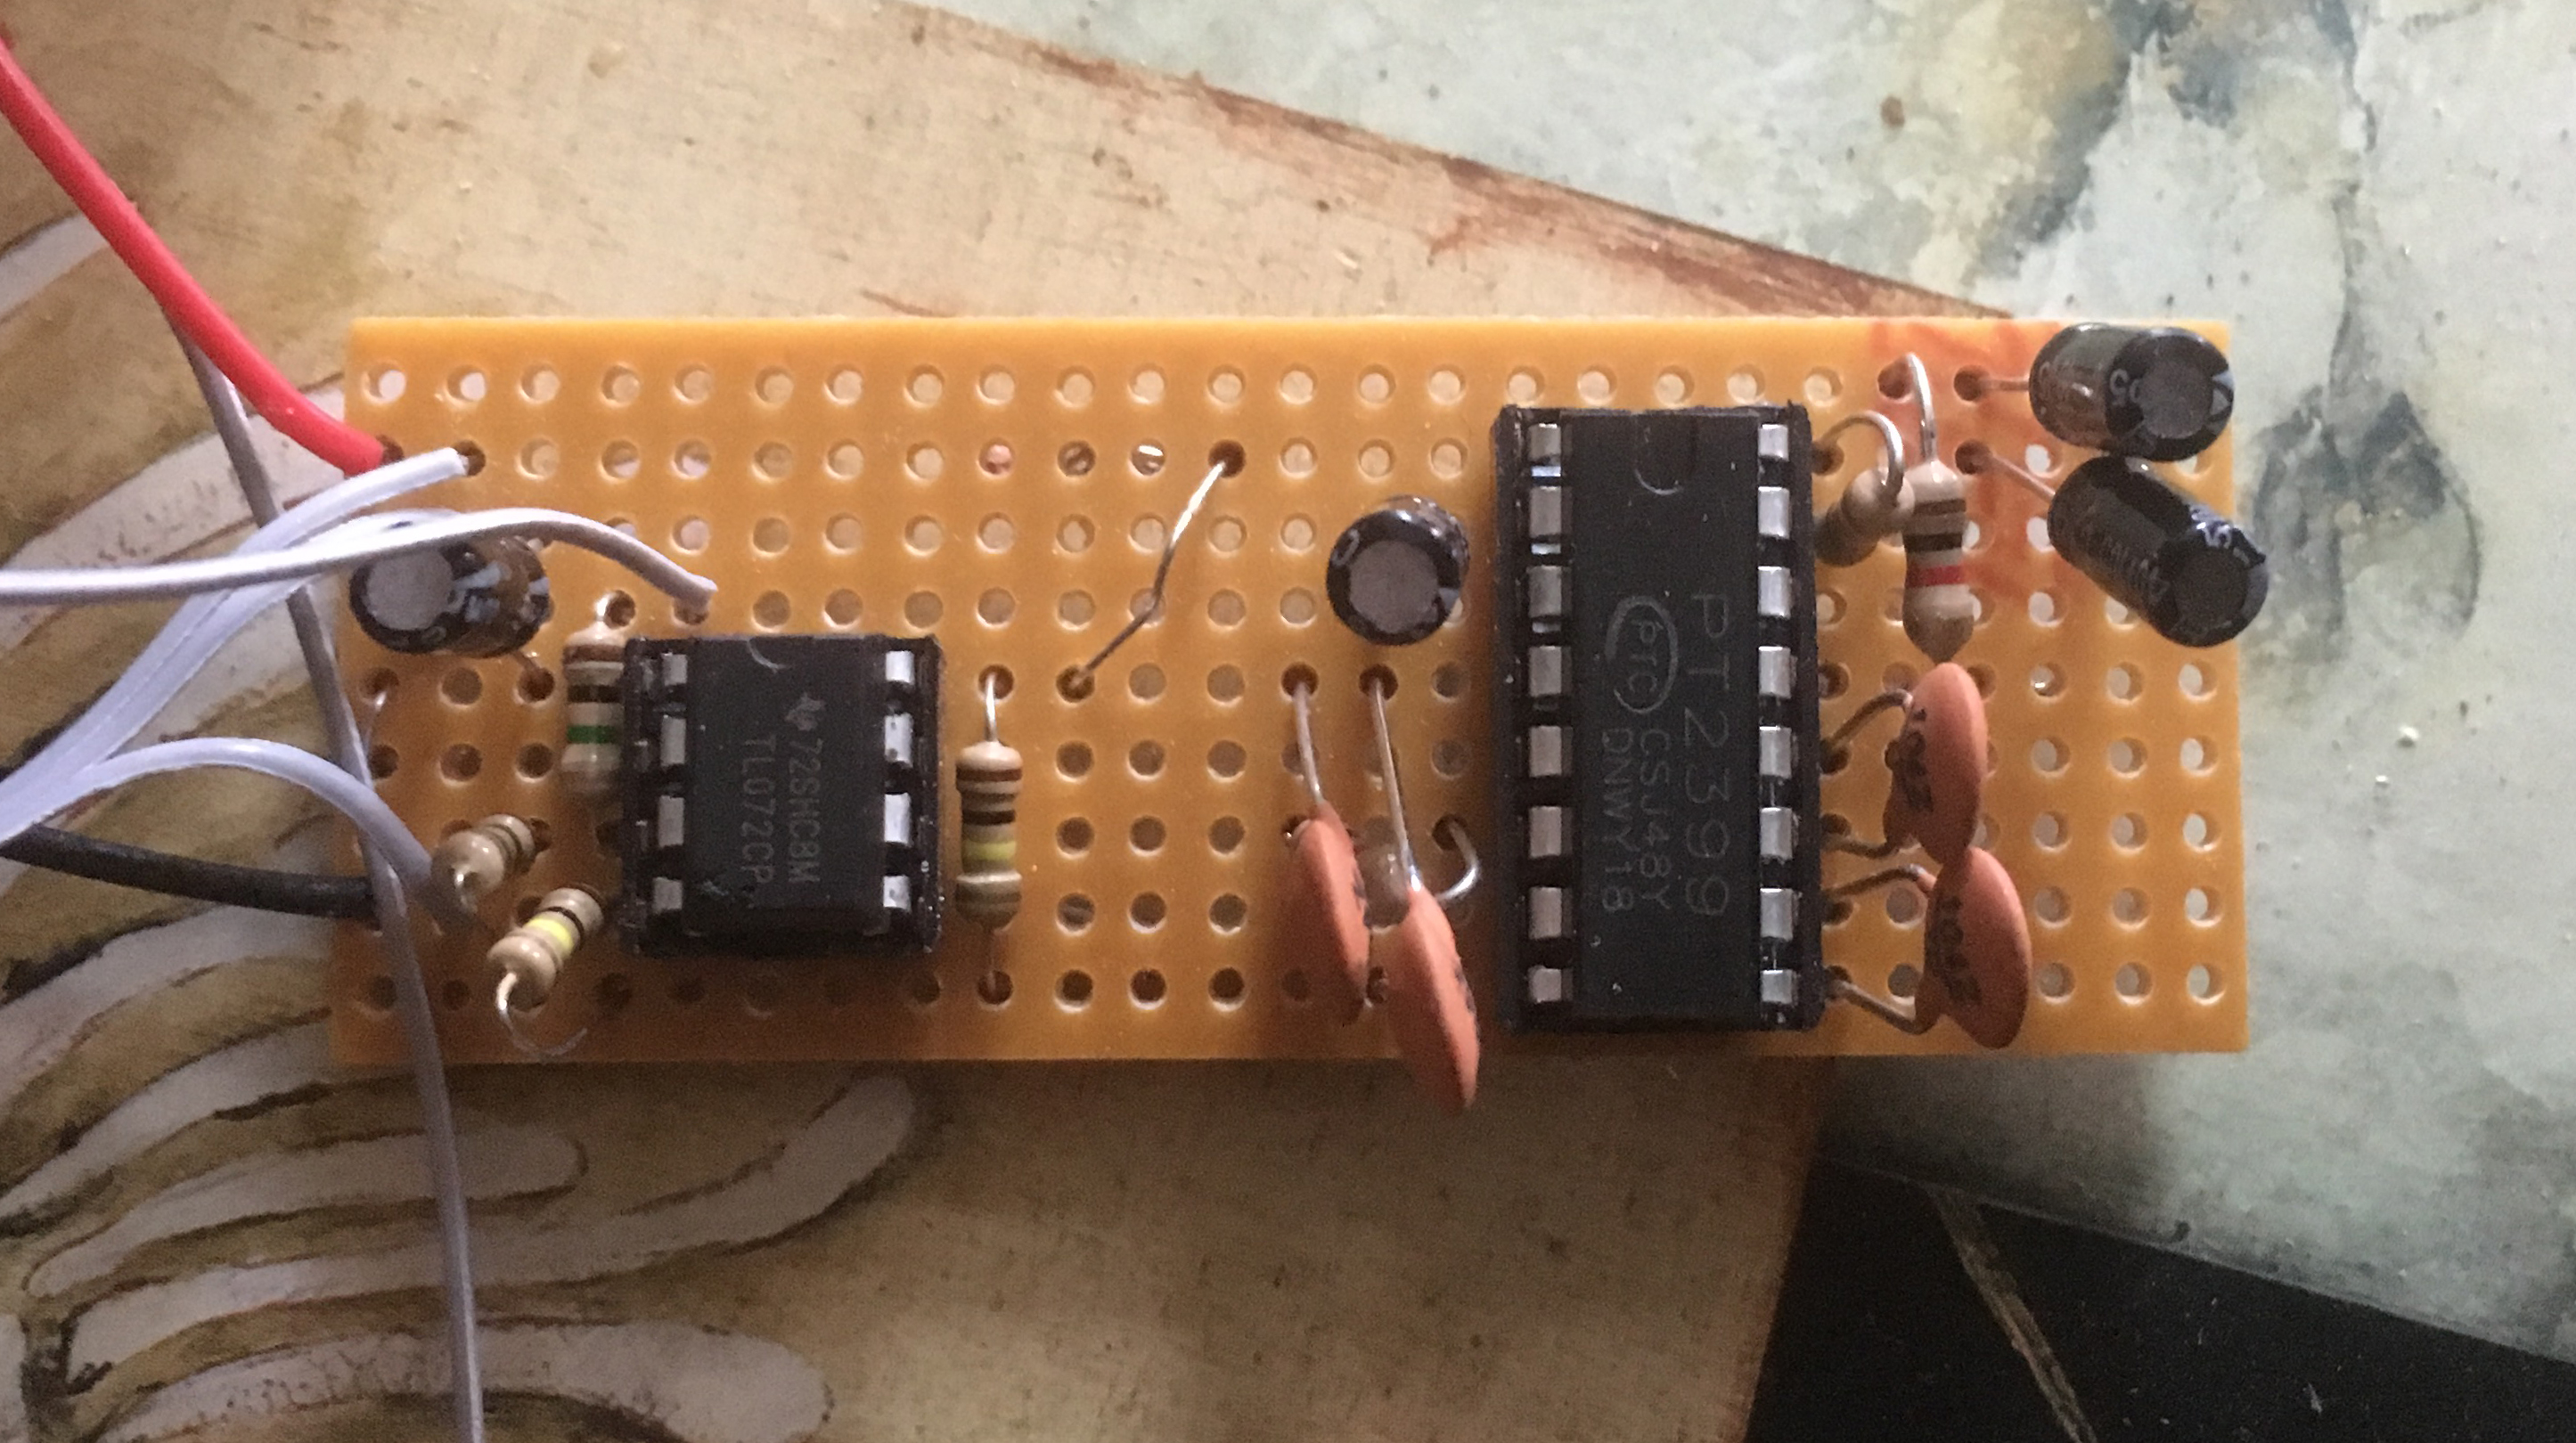 Piezos Electrets Pt 4 Electronics And A Very Simple Pt2399 Echo Circuit I Wanted To Be Able Adjust The Number Of Repeats This Time So Experimented Bit Came Up With Following Development Above